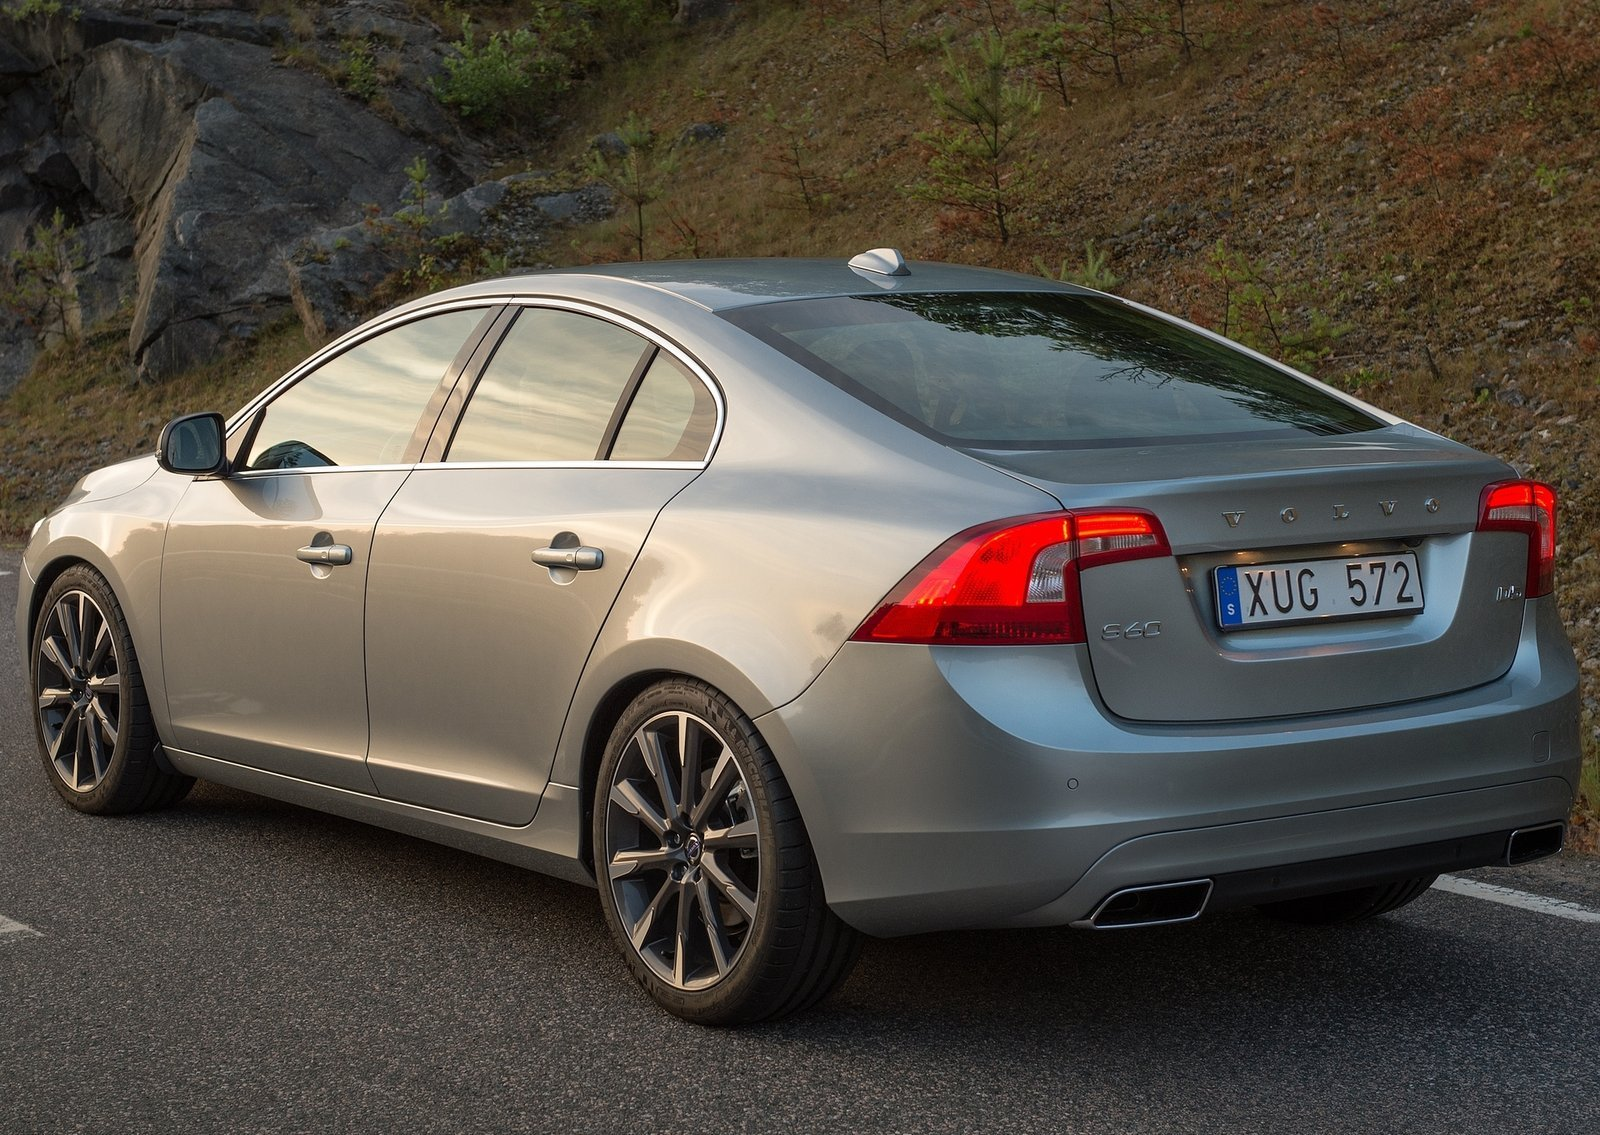 2016 volvo s60 inscription costs 36 695 s60 cross country is 44 495 photo gallery. Black Bedroom Furniture Sets. Home Design Ideas